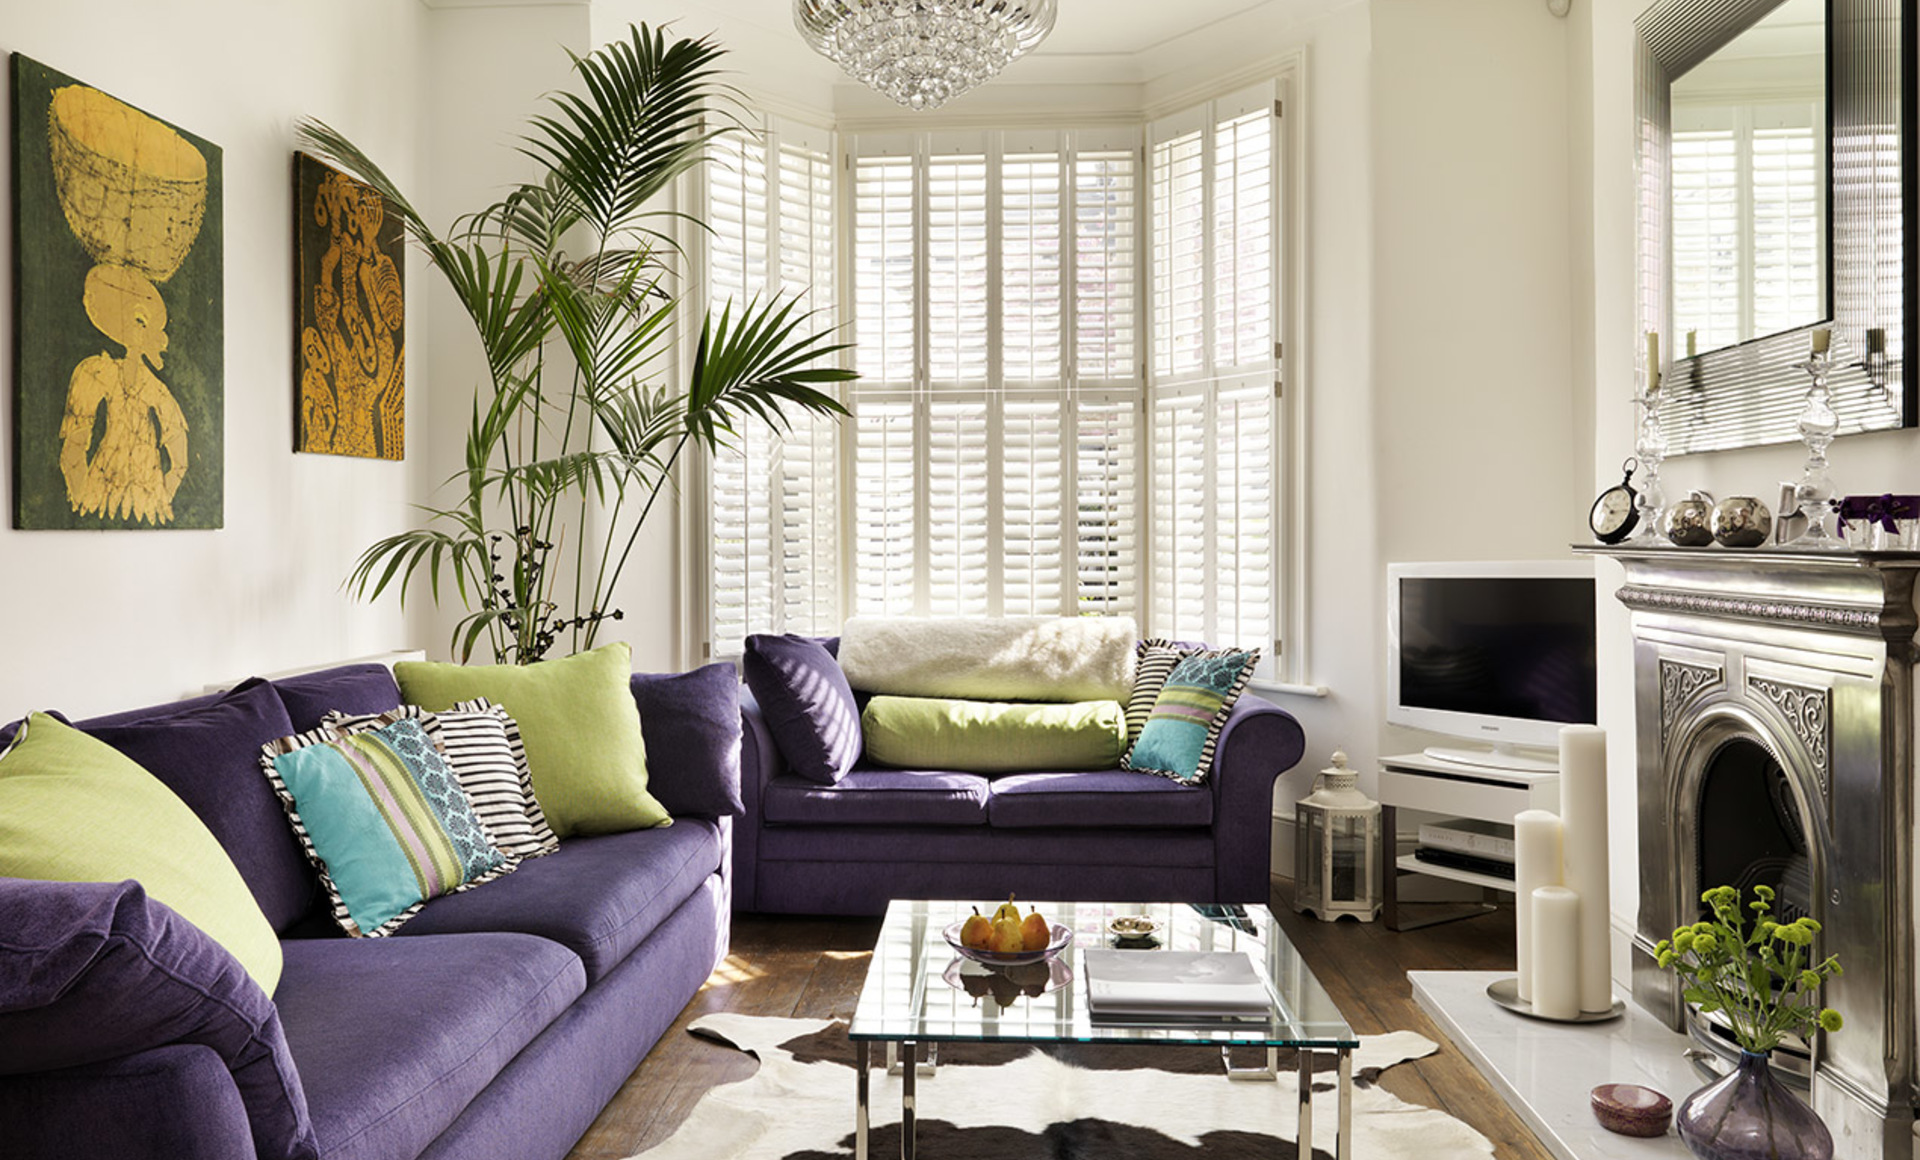 Purple sofas in a Victorian living room with glass and silver furniture and accessories and indoor greenery